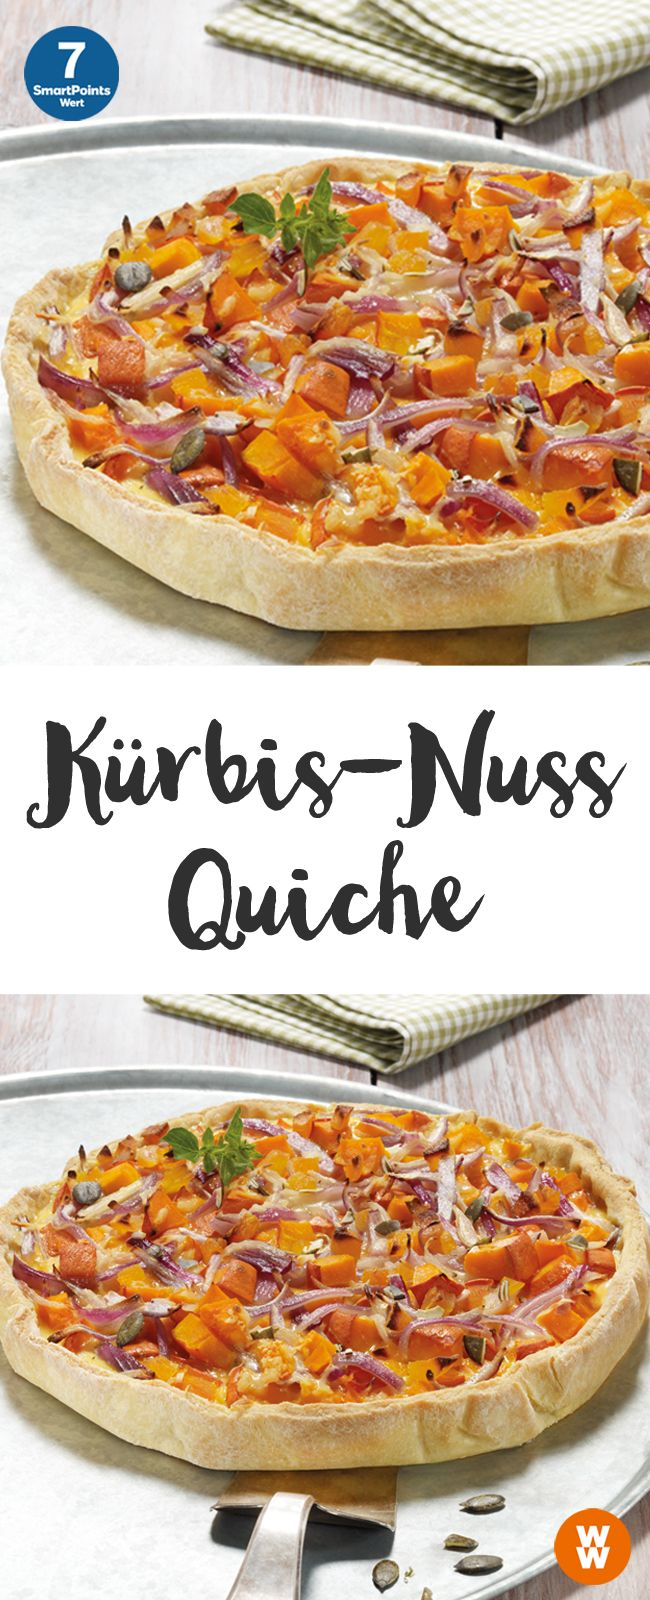 Leckere Kürbis-Nuss-Quiche, 7 SmartPoints | Weight Watchers